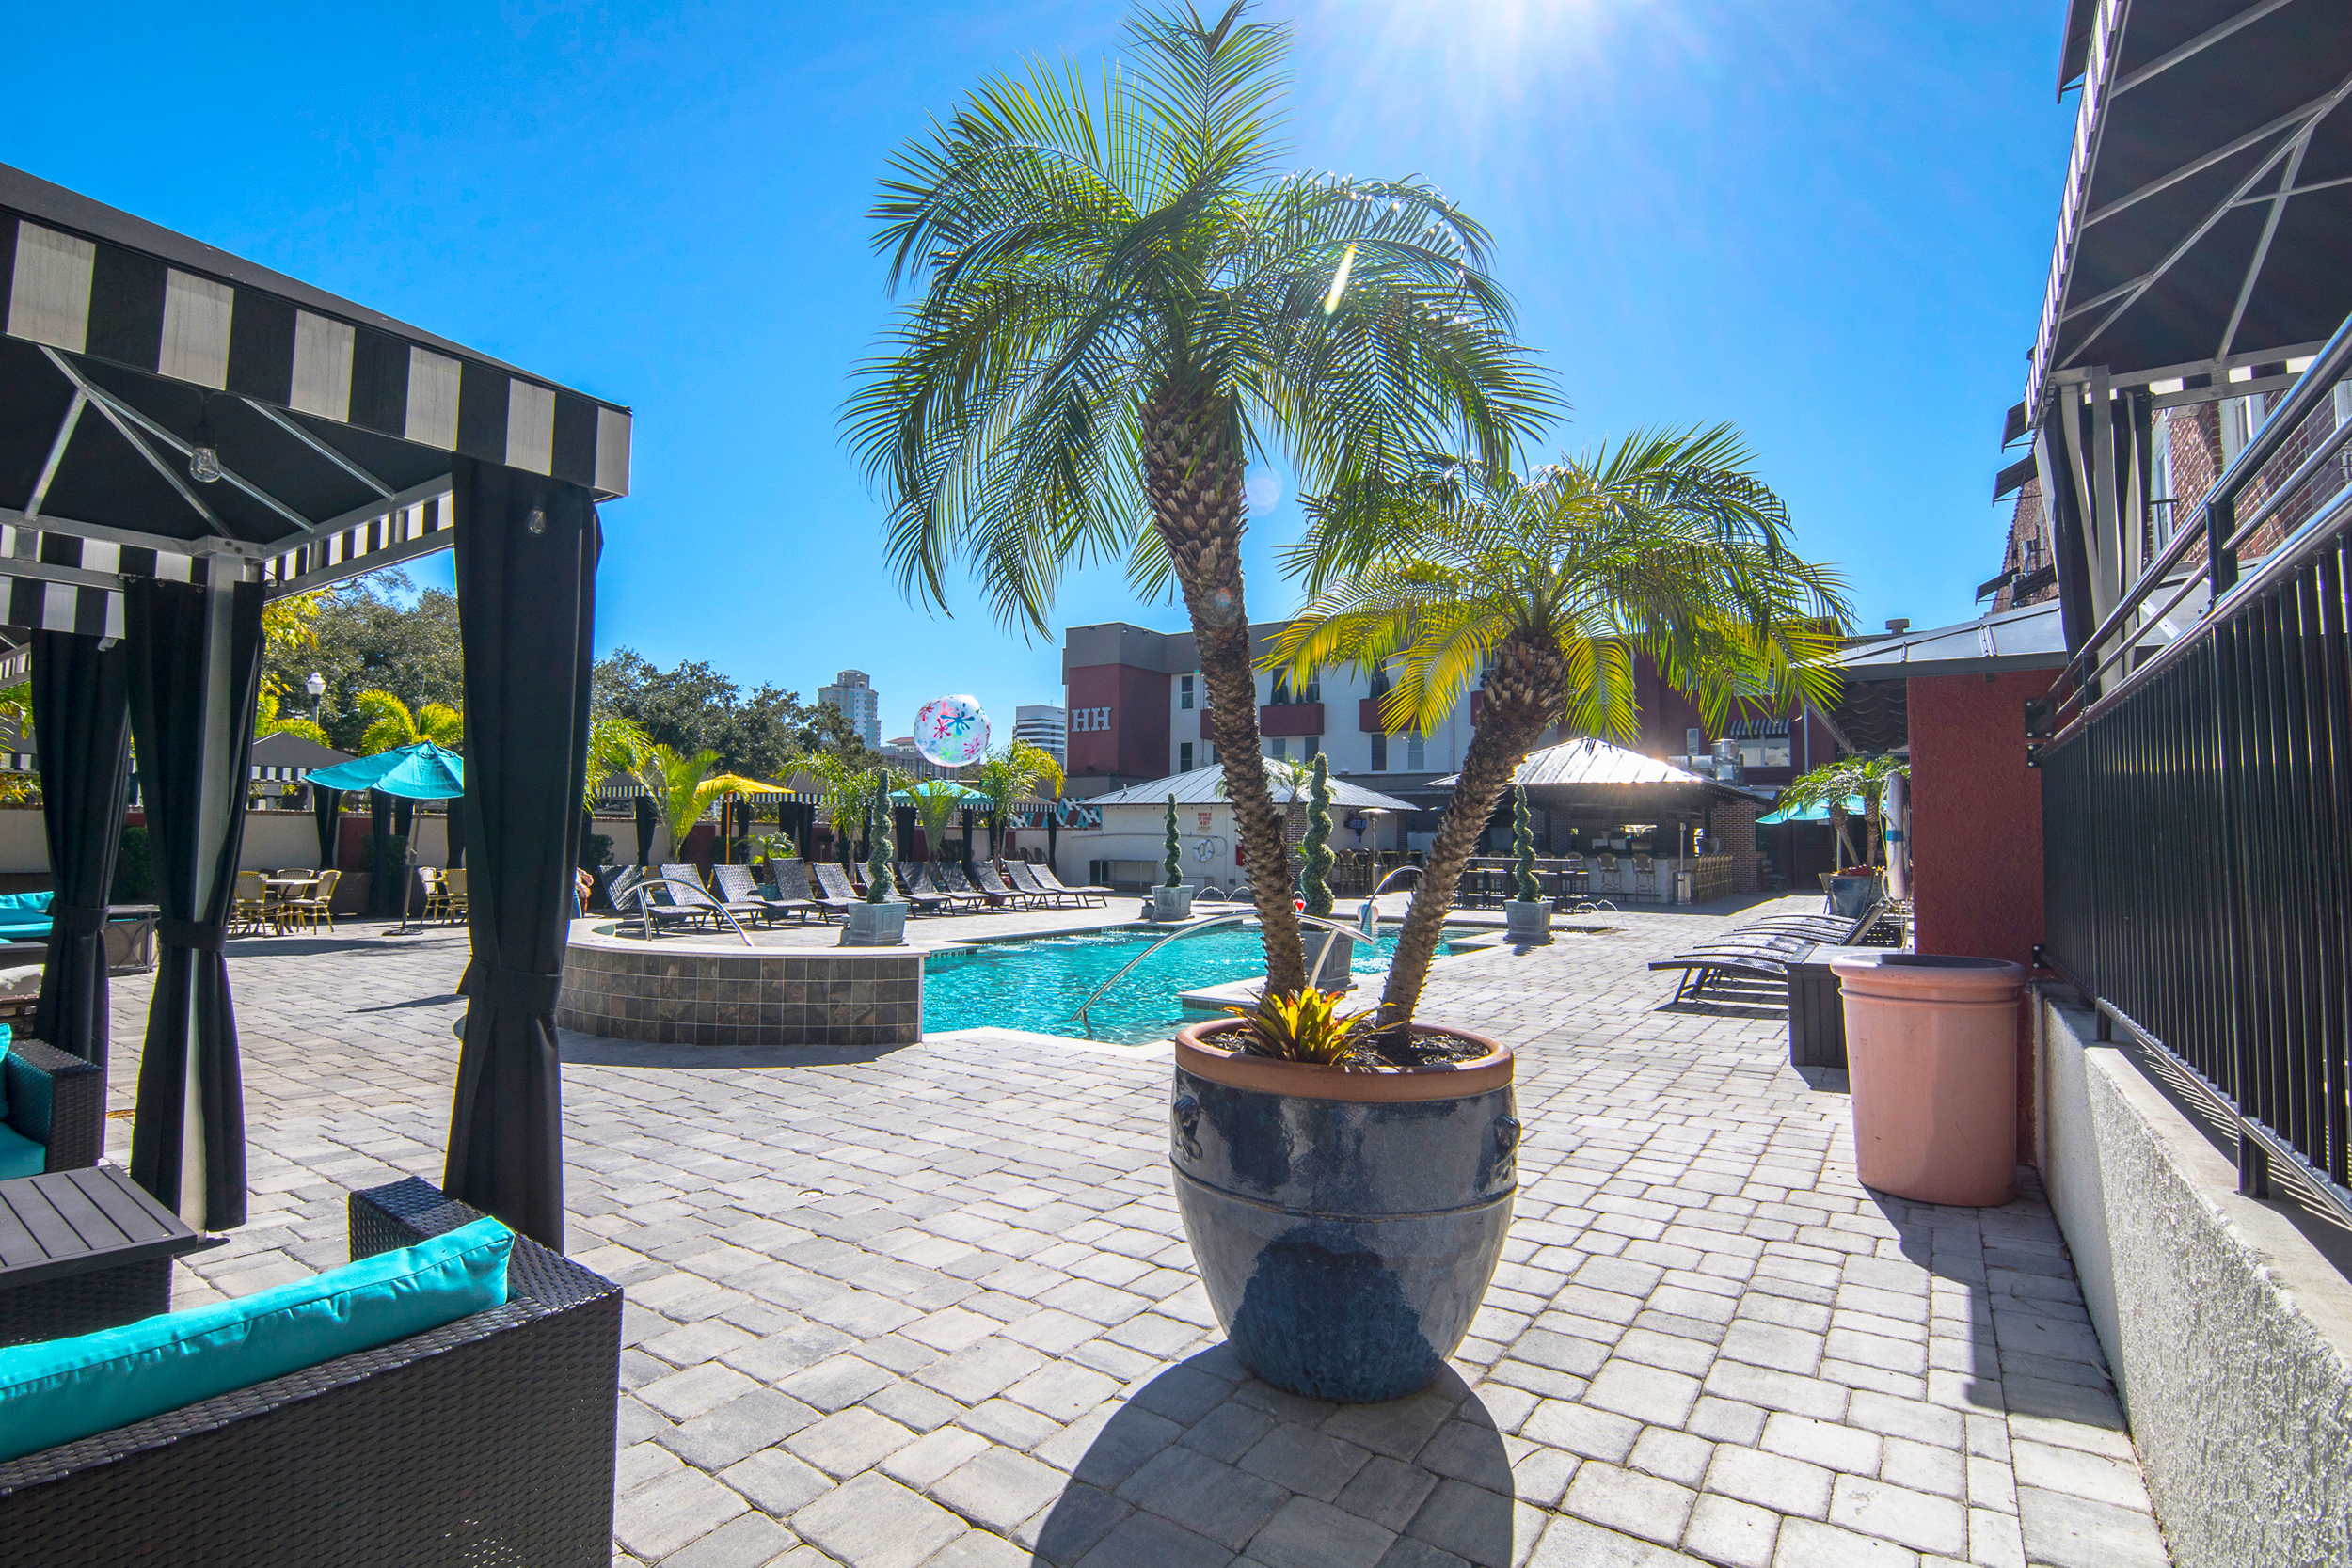 Potted palm tree in pool area